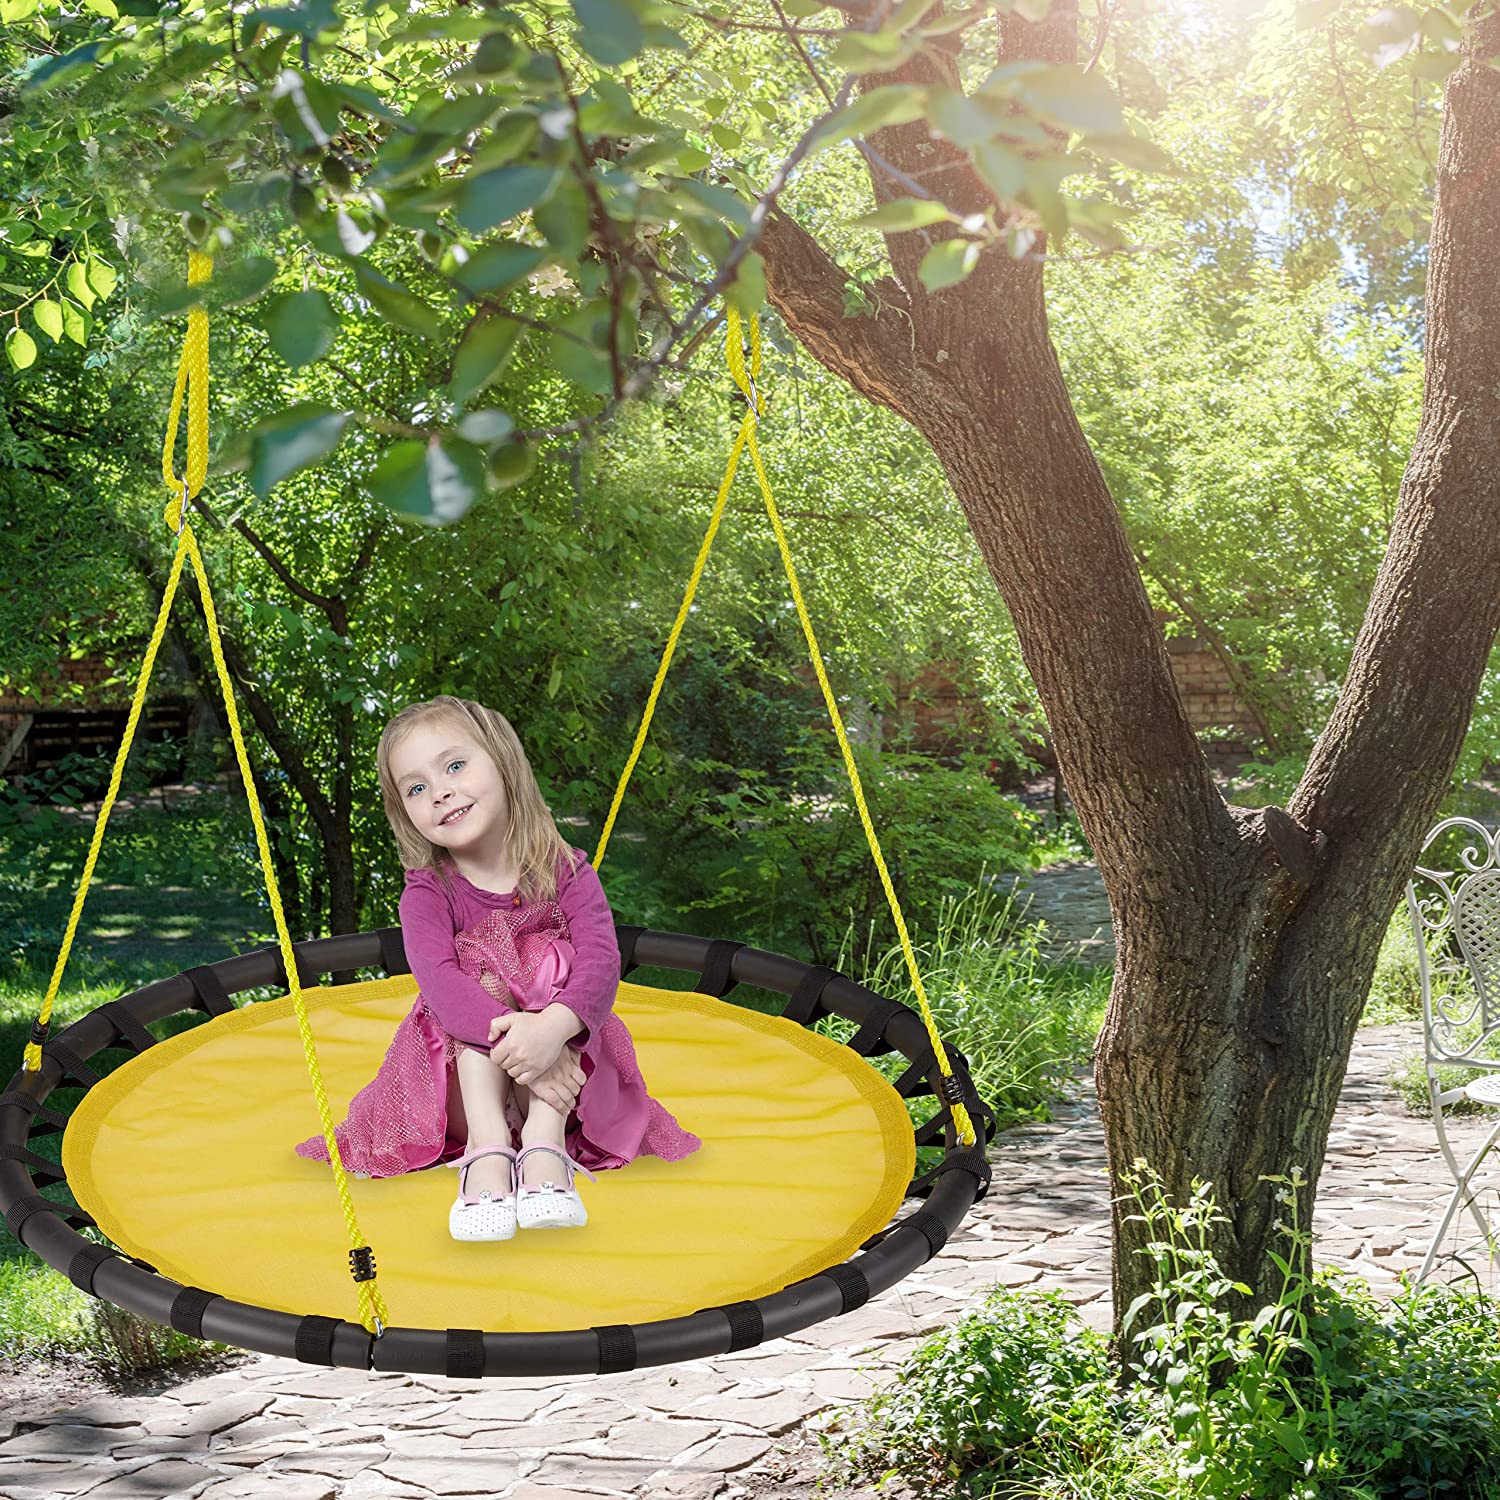 Purple /Ø: 120 cm Relaxdays Nest Height-Adjustable Round Hanging Swing for Children for up to 100 kg